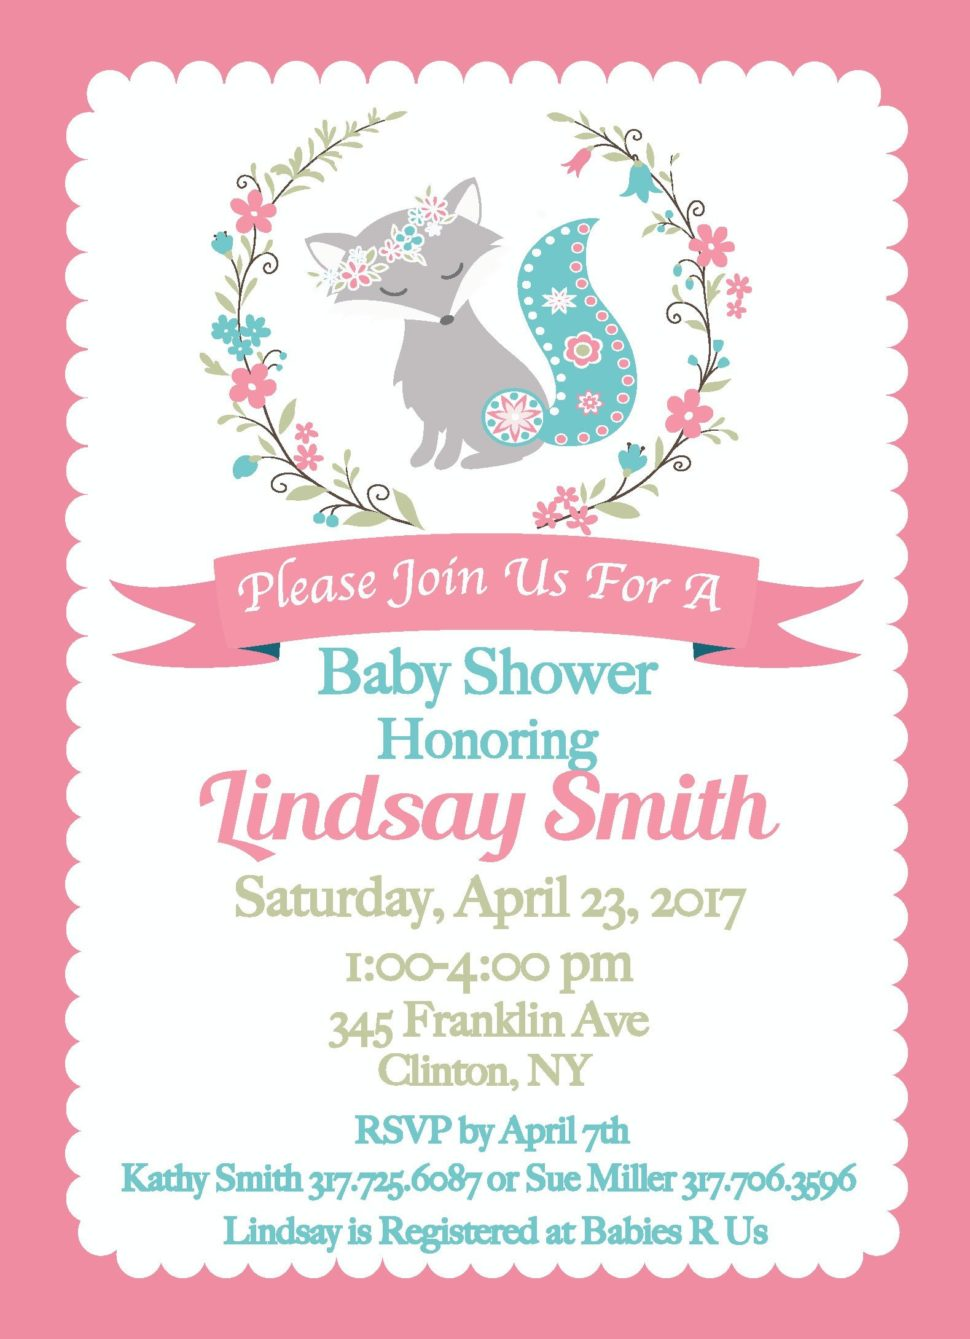 Medium Size of Baby Shower:delightful Baby Shower Invitation Wording Picture Designs Baby Shower Invitation Wording Baby Boy Shower Favors Baby Shower Baby Shower Baby Shower Adalah Baby Shower Quotes Baby Shower Wishing Well Best Baby Shower Gifts 2018 Corner Baby Shower Thank You Cards Wording Gallery Bridal